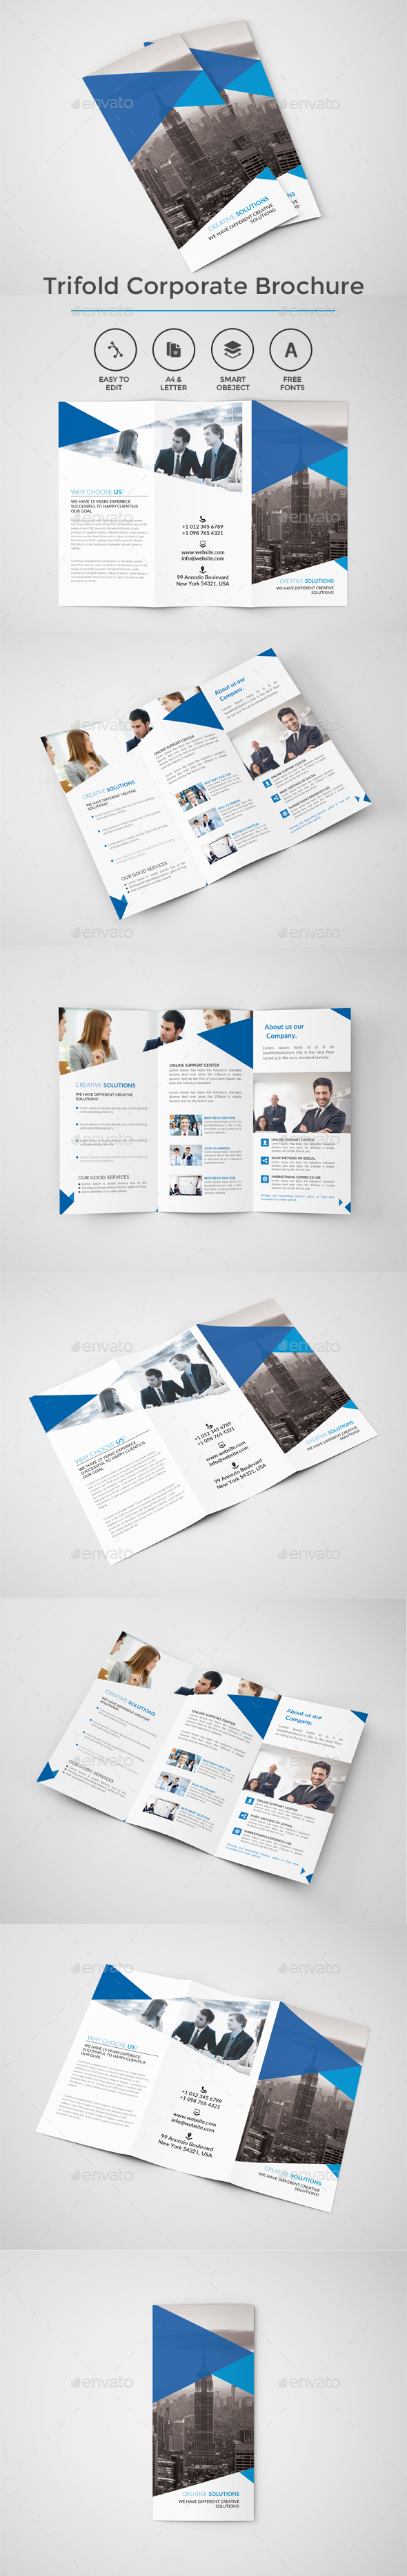 creative trifold brochure template psd download here http